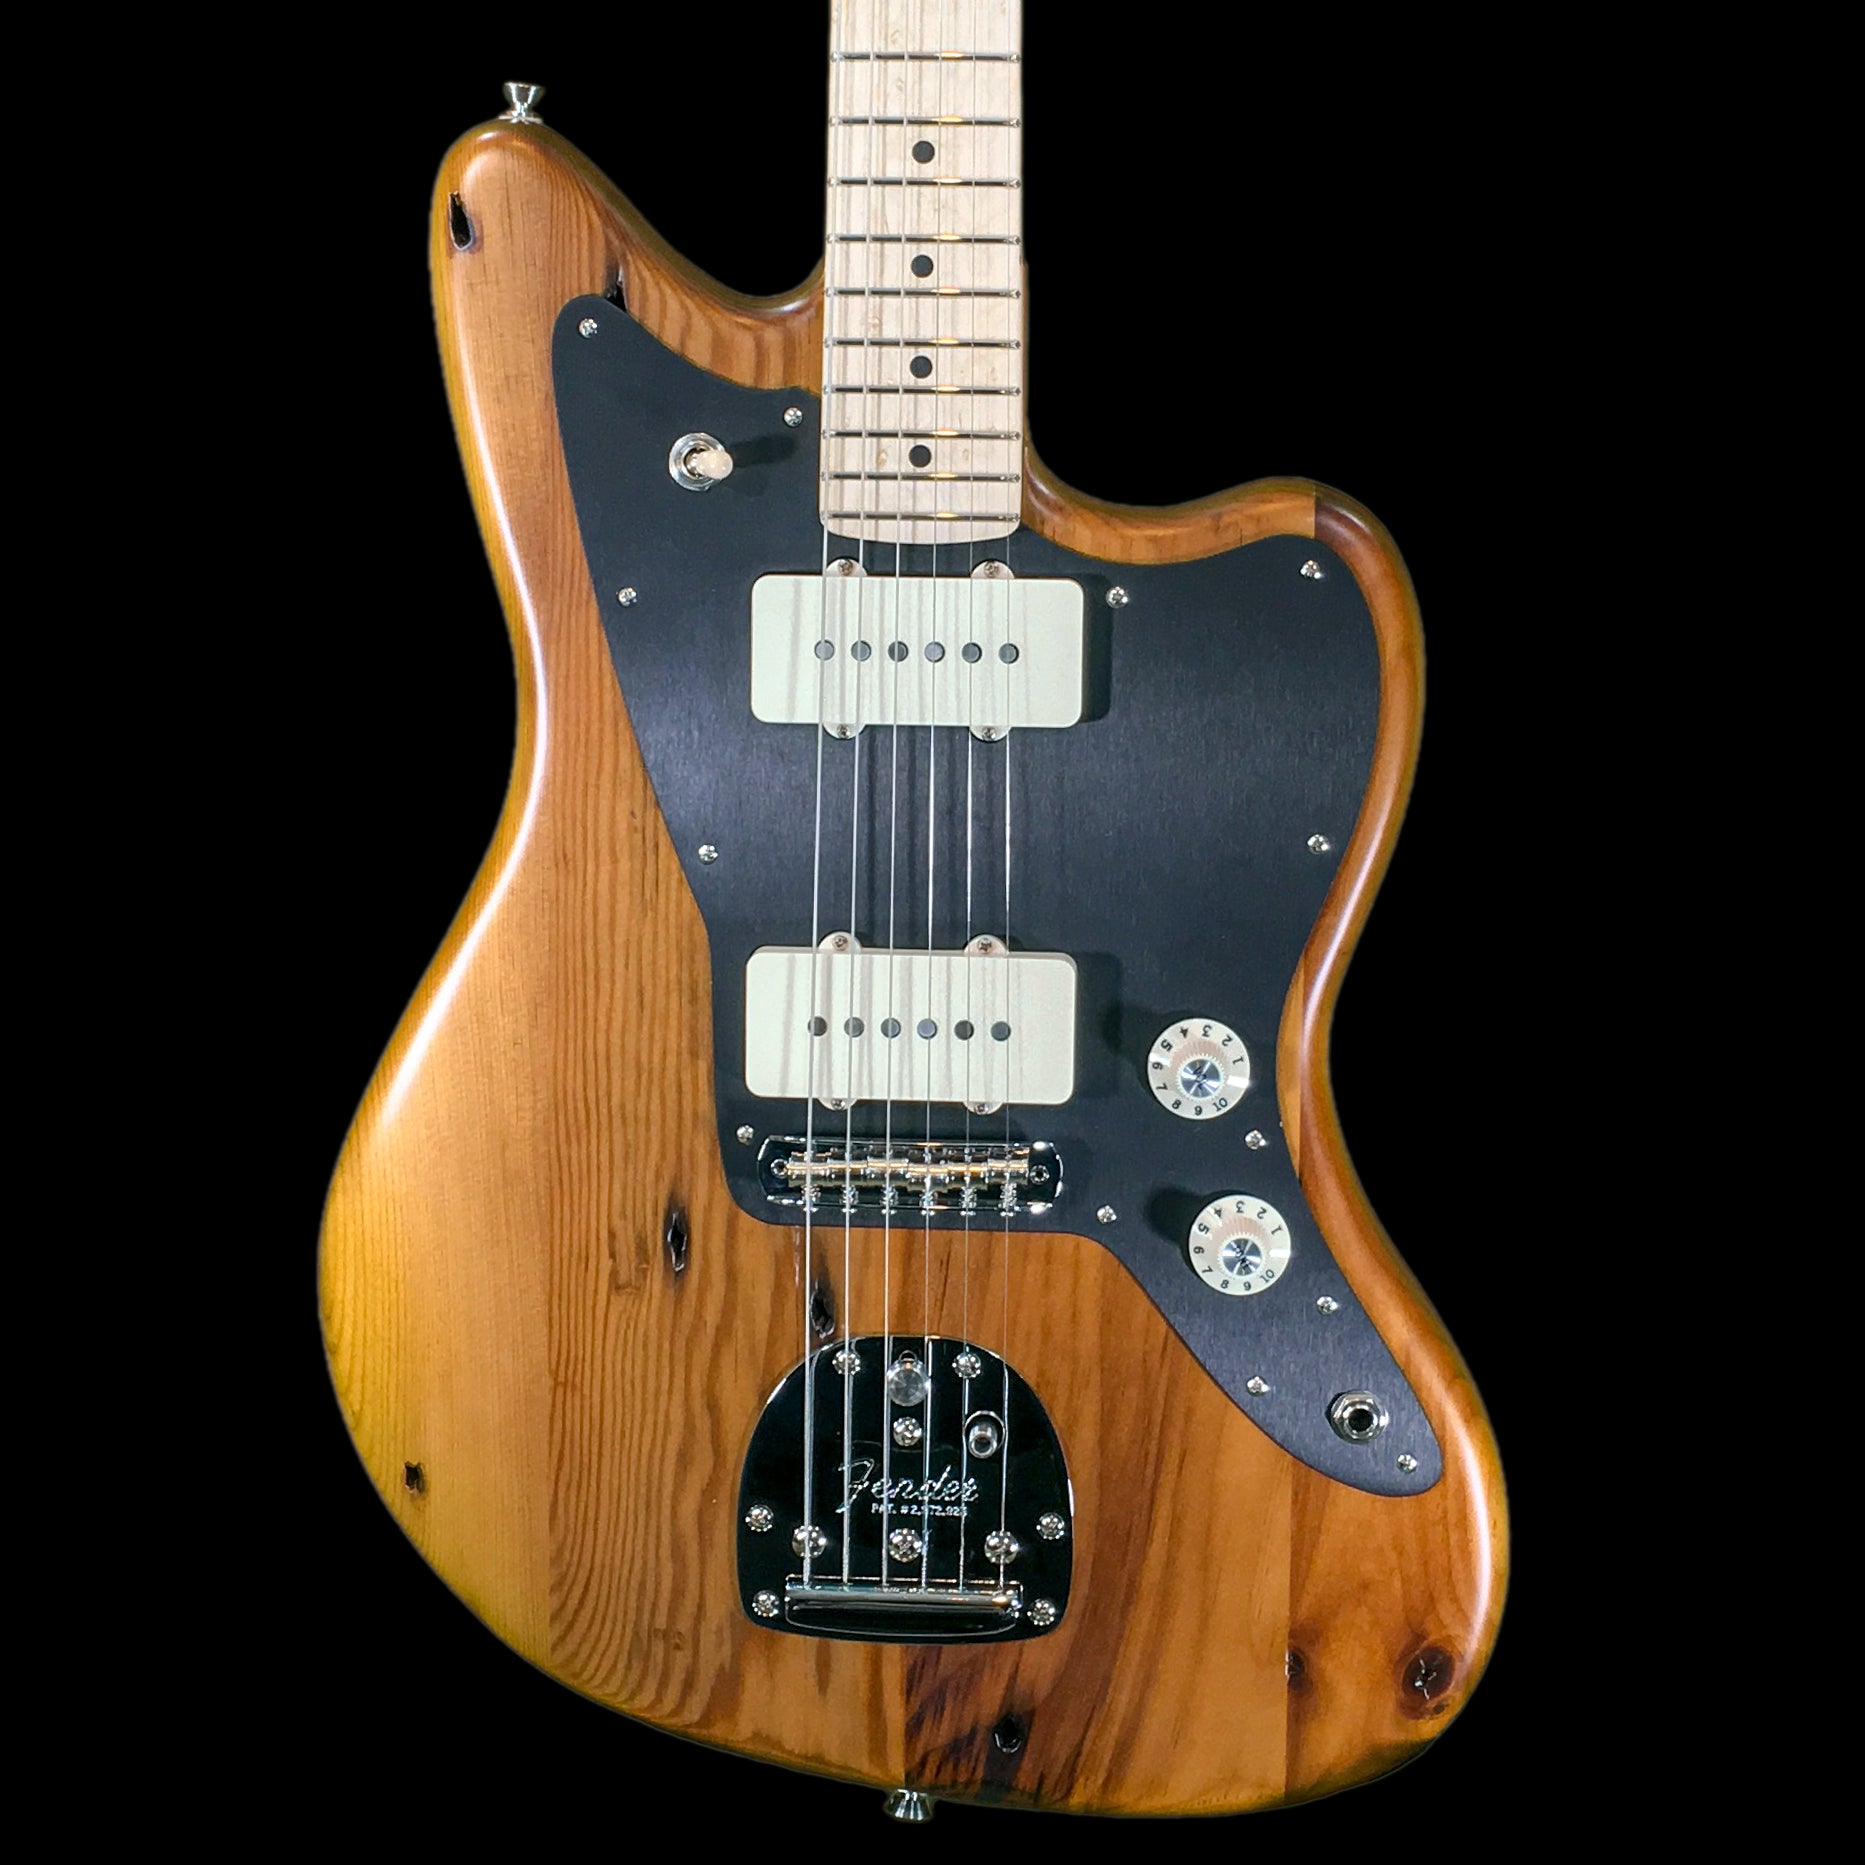 American Professional Jazzmaster Wiring Diagram Schematic Diagrams 50 S Fender Limited Edition Pine Natural Les Paul